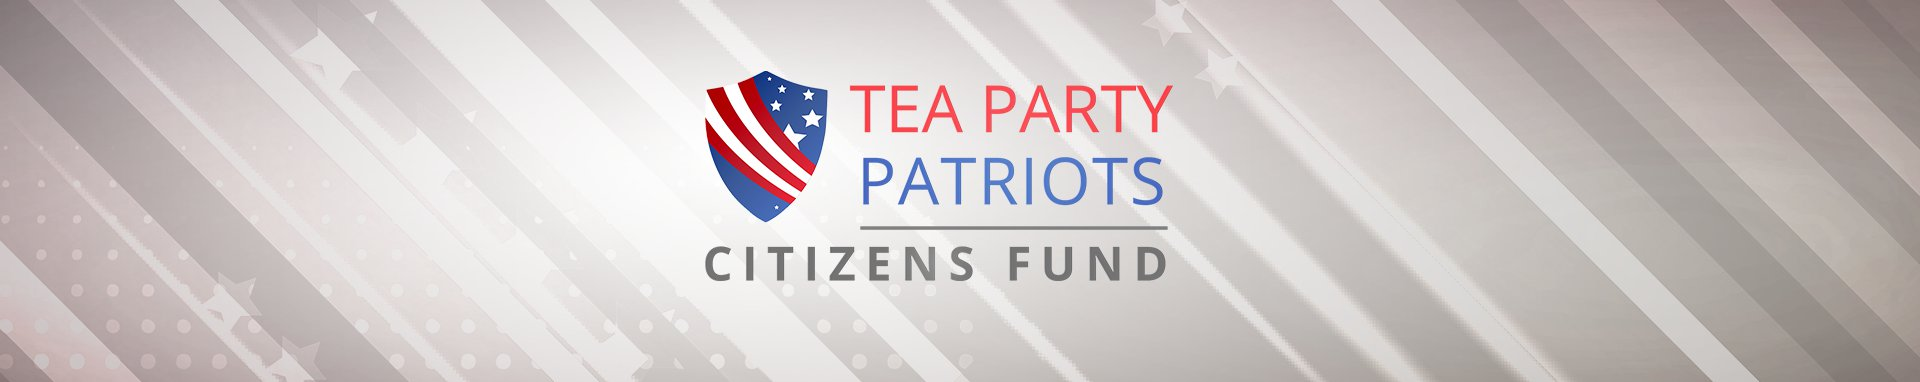 Tea Party Patriots Citizens Fund Congratulates Ted Cruz on Winning Republican Nomination for Texas Senate